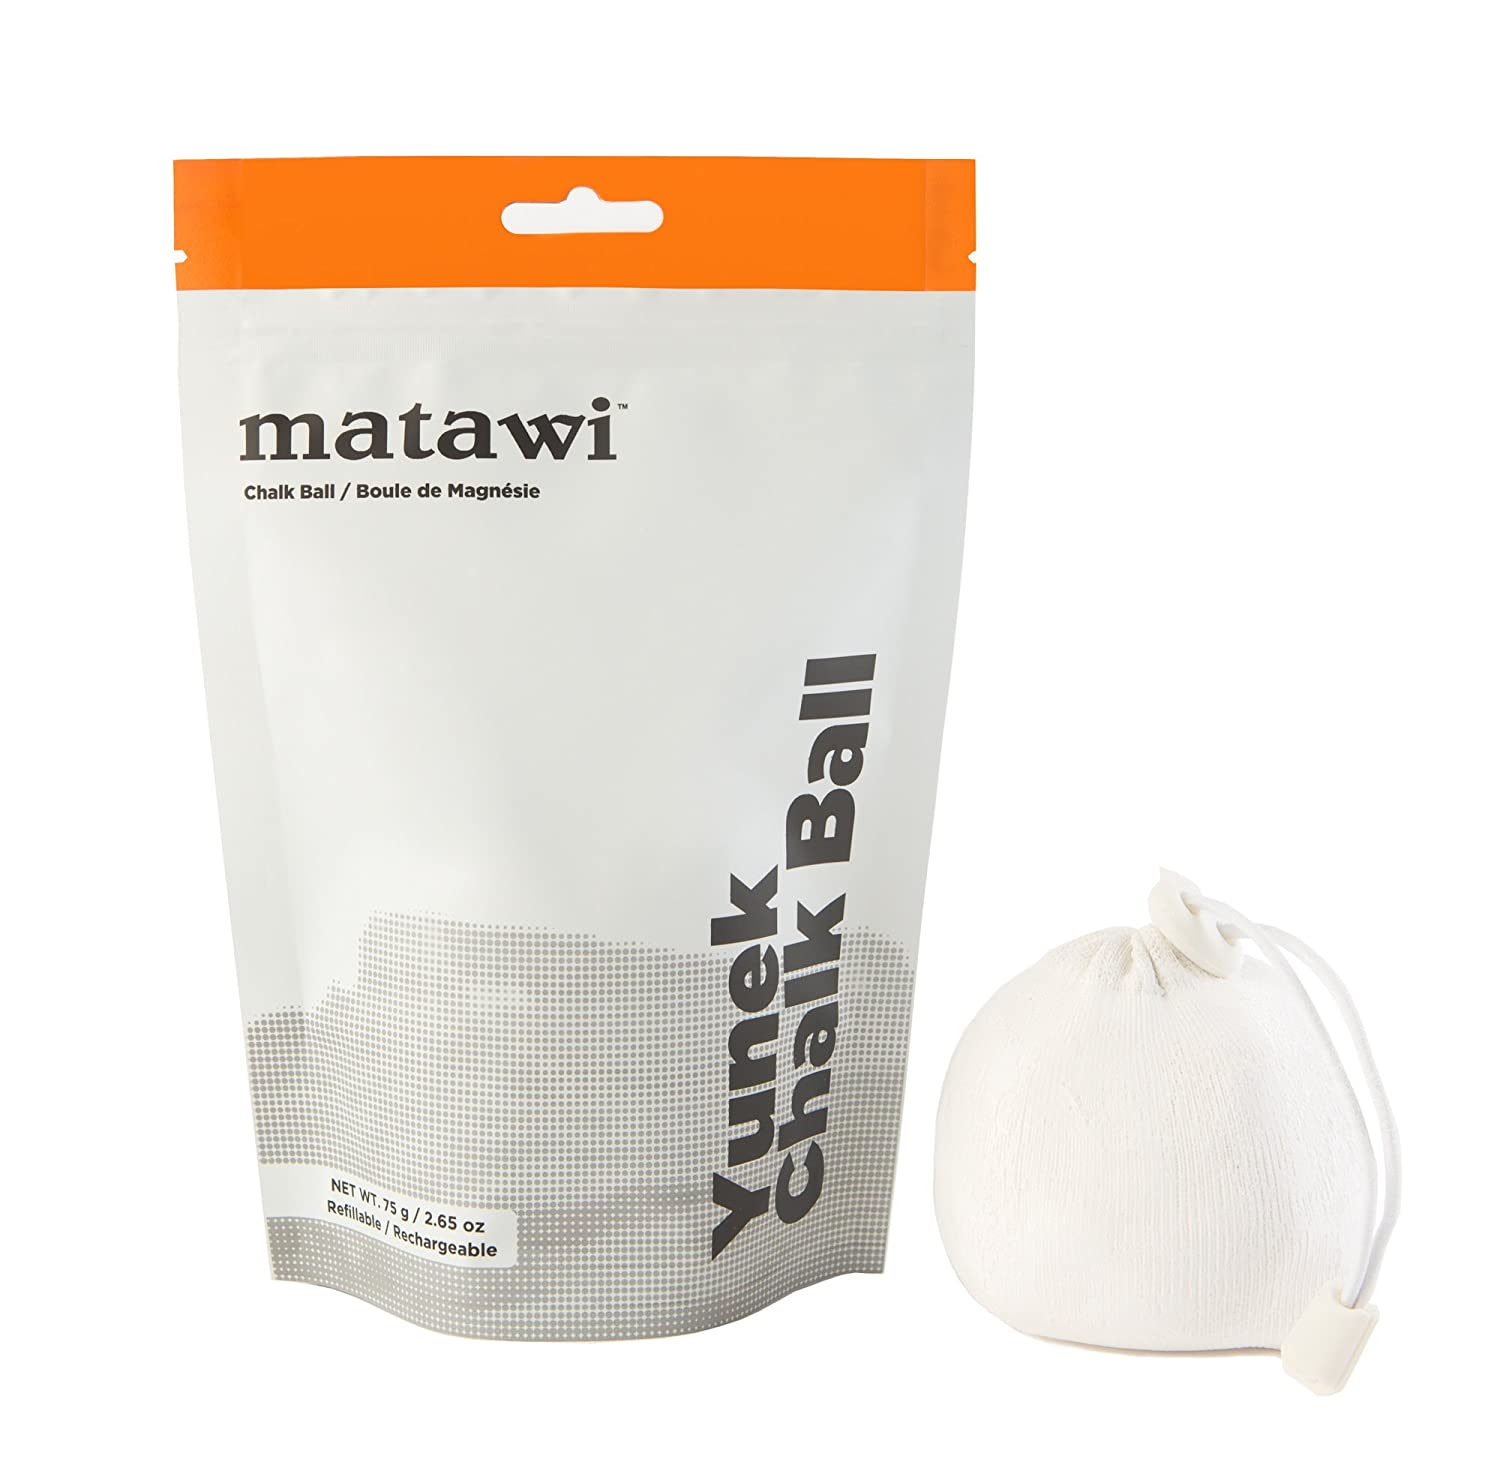 Amazon.com : Matawi Yunek Refillable Chalk Ball with 75 Gram (2.65 oz) Enhanced Grip - Pure Gym Chalk Bag for Rock Climbing, Weight Lifting, Crossfit, ...